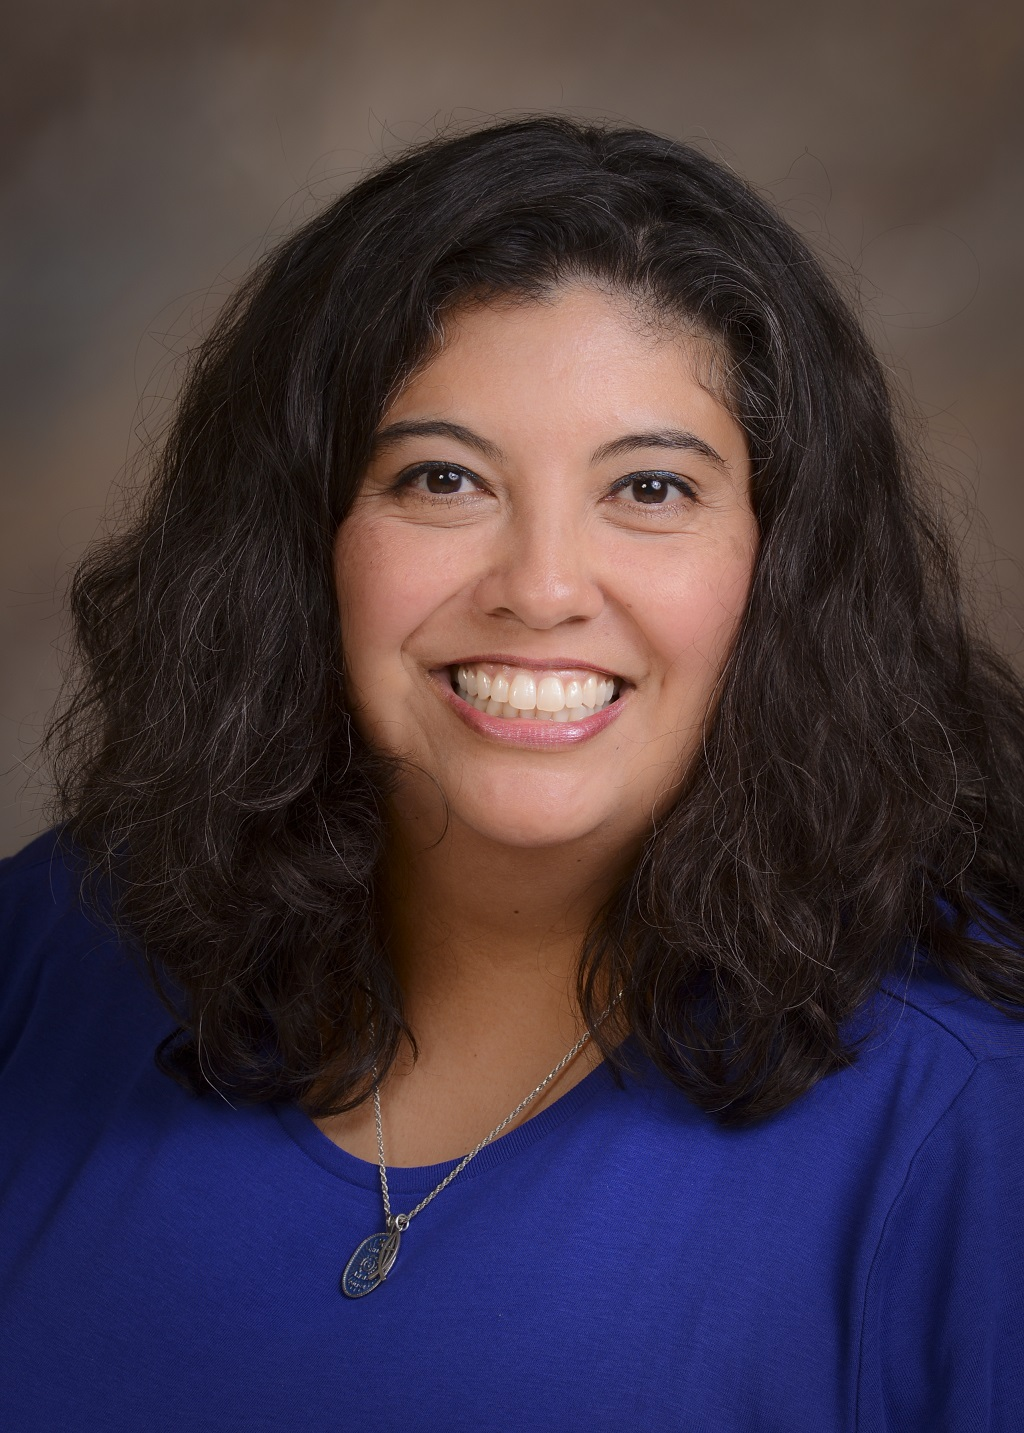 Laura Trujillo-Jenks, Ph.D., FHEA